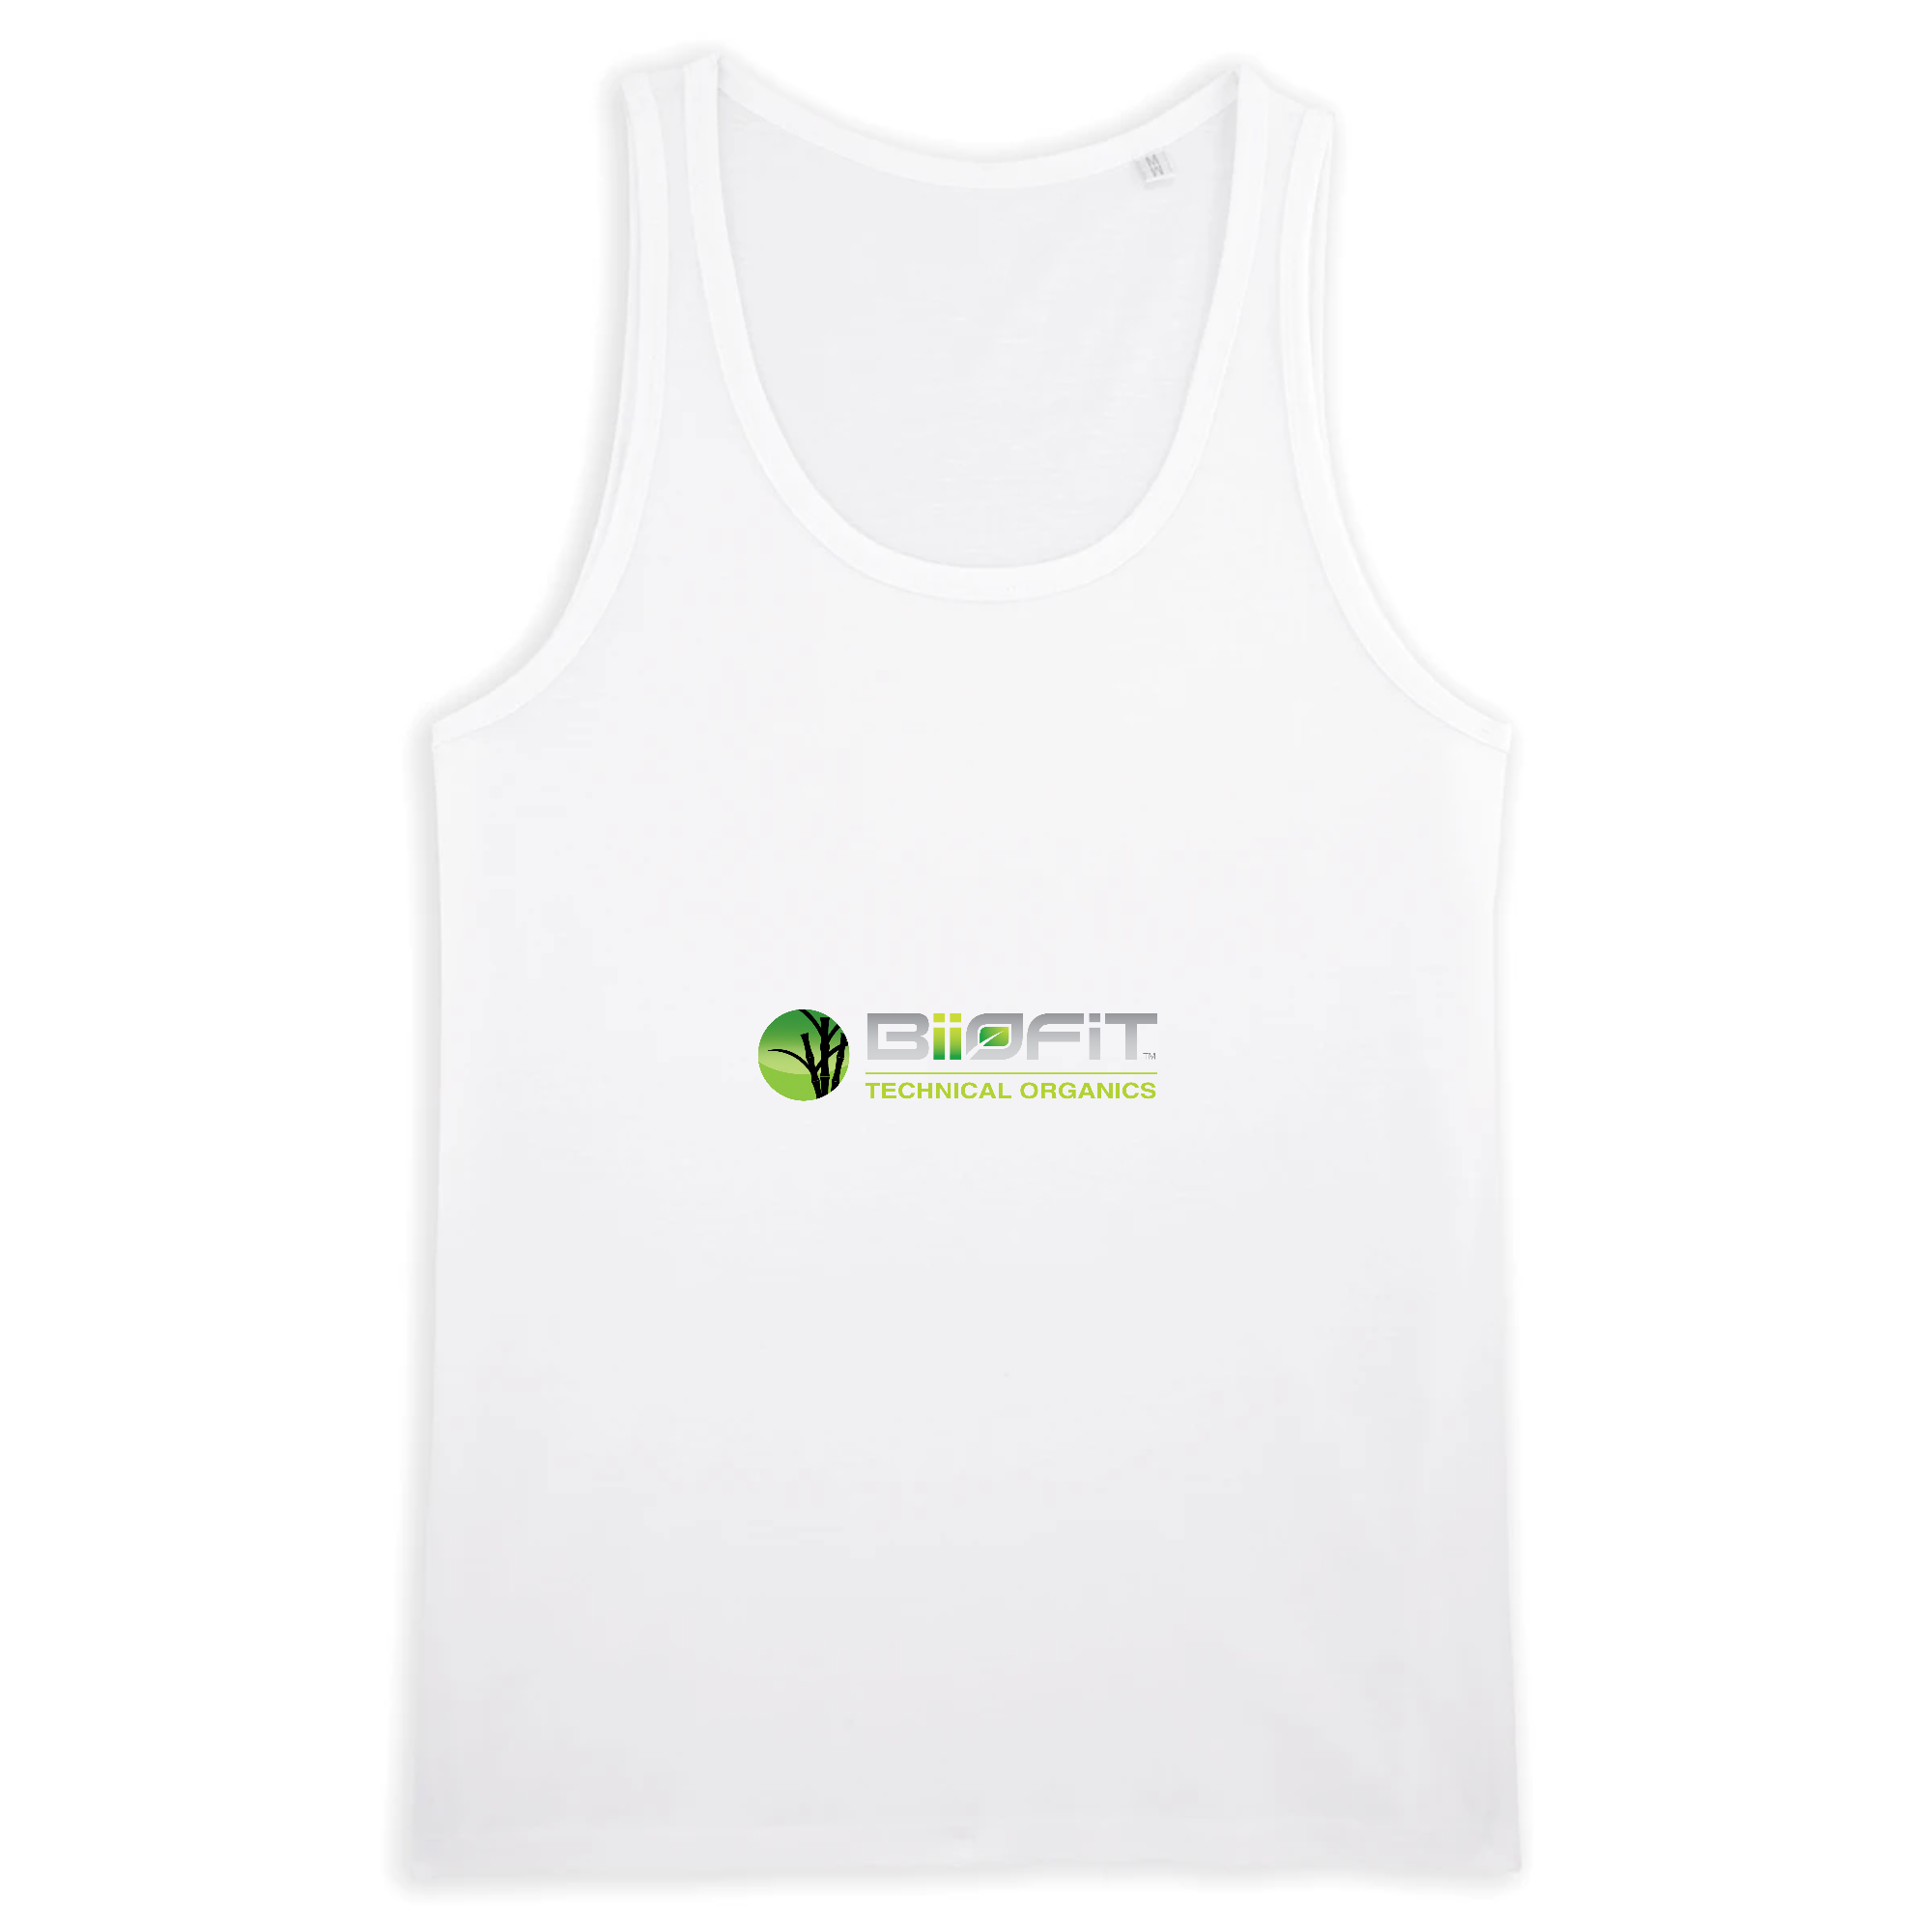 MAN TANK TOP 100% ORGANIC COTTON - RUNS